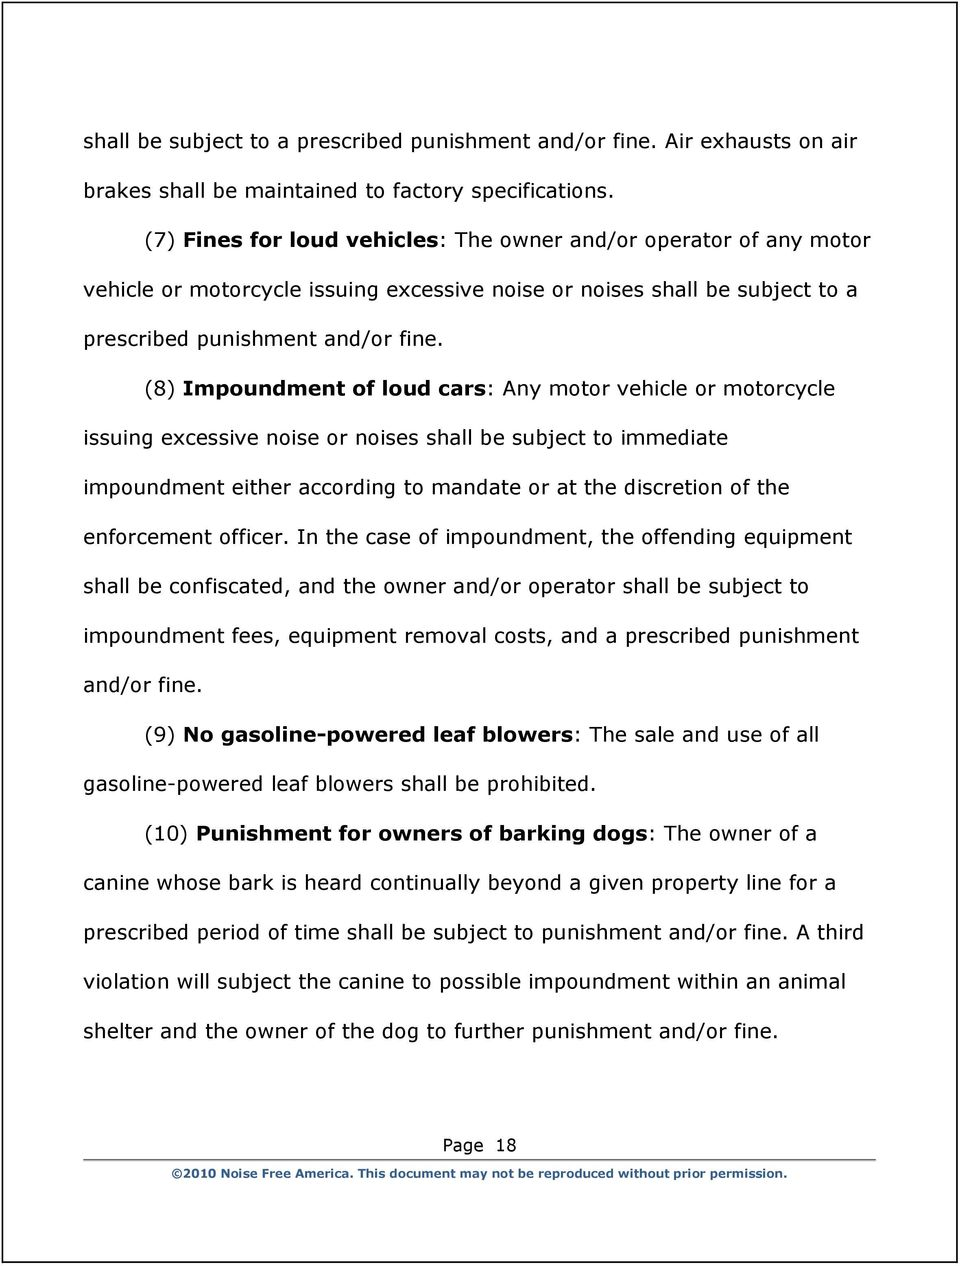 (8) Impoundment of loud cars: Any motor vehicle or motorcycle issuing excessive noise or noises shall be subject to immediate impoundment either according to mandate or at the discretion of the